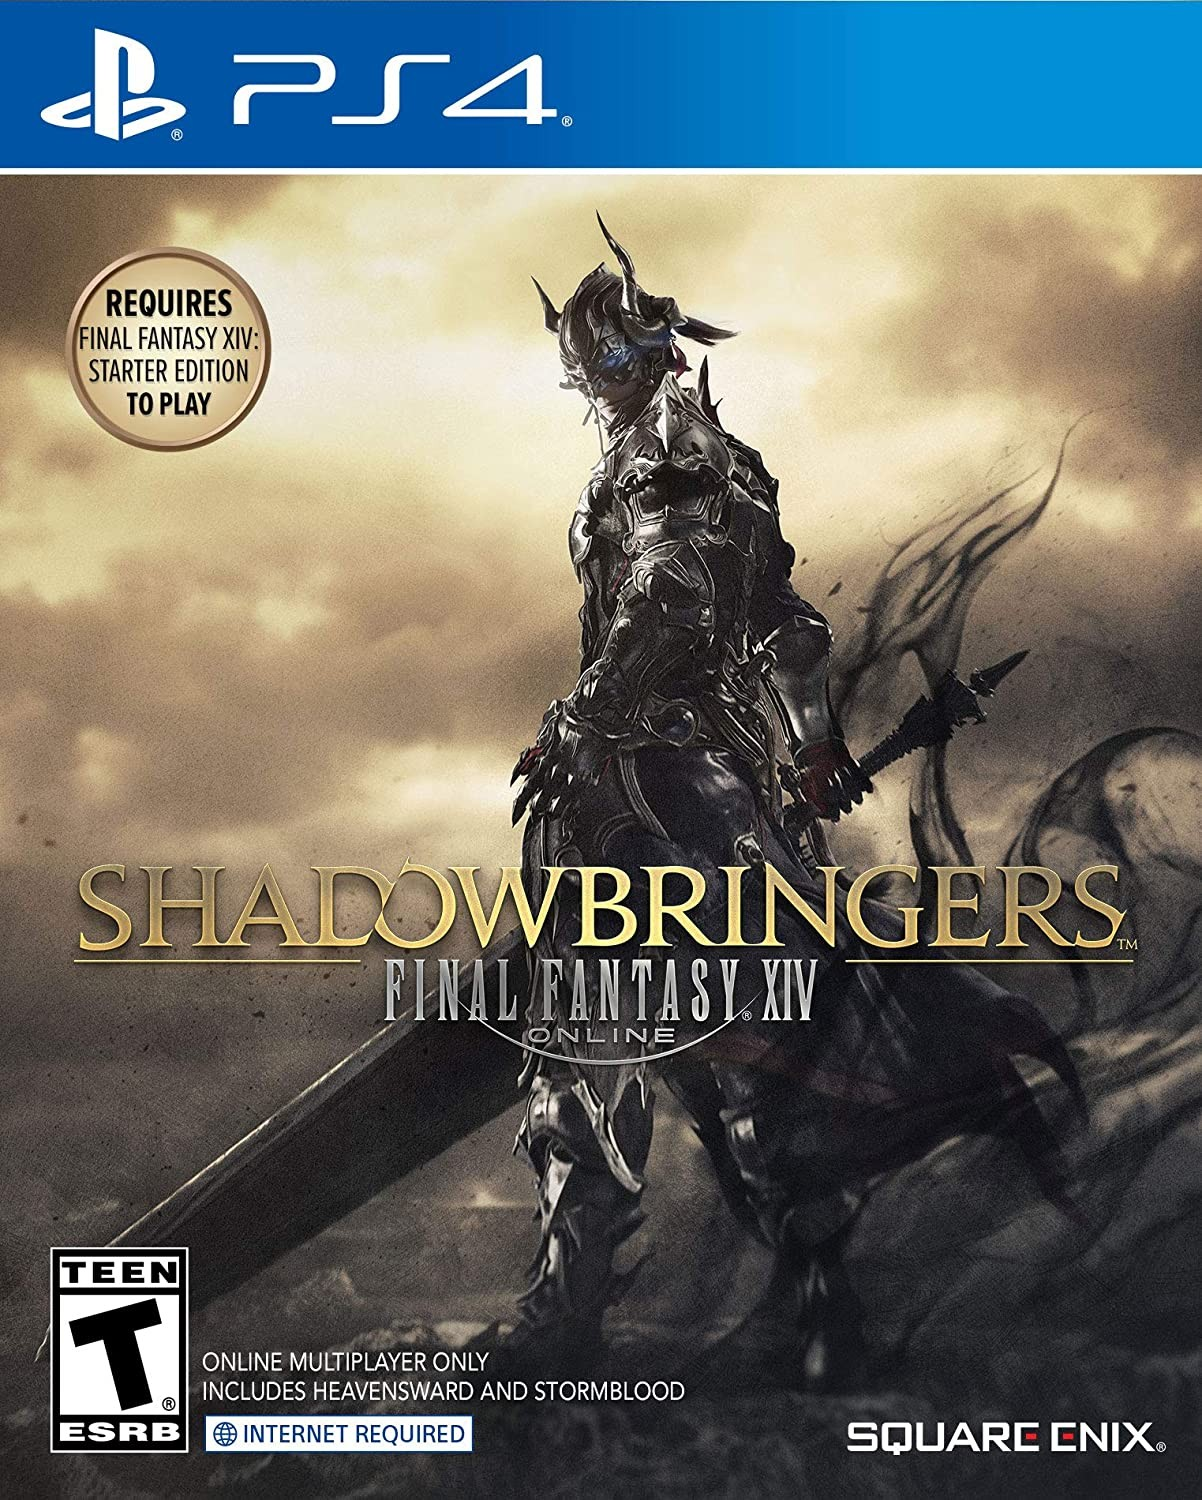 Final Fantasy XIV Shadowbringers | Final Fantasy 14 PS4